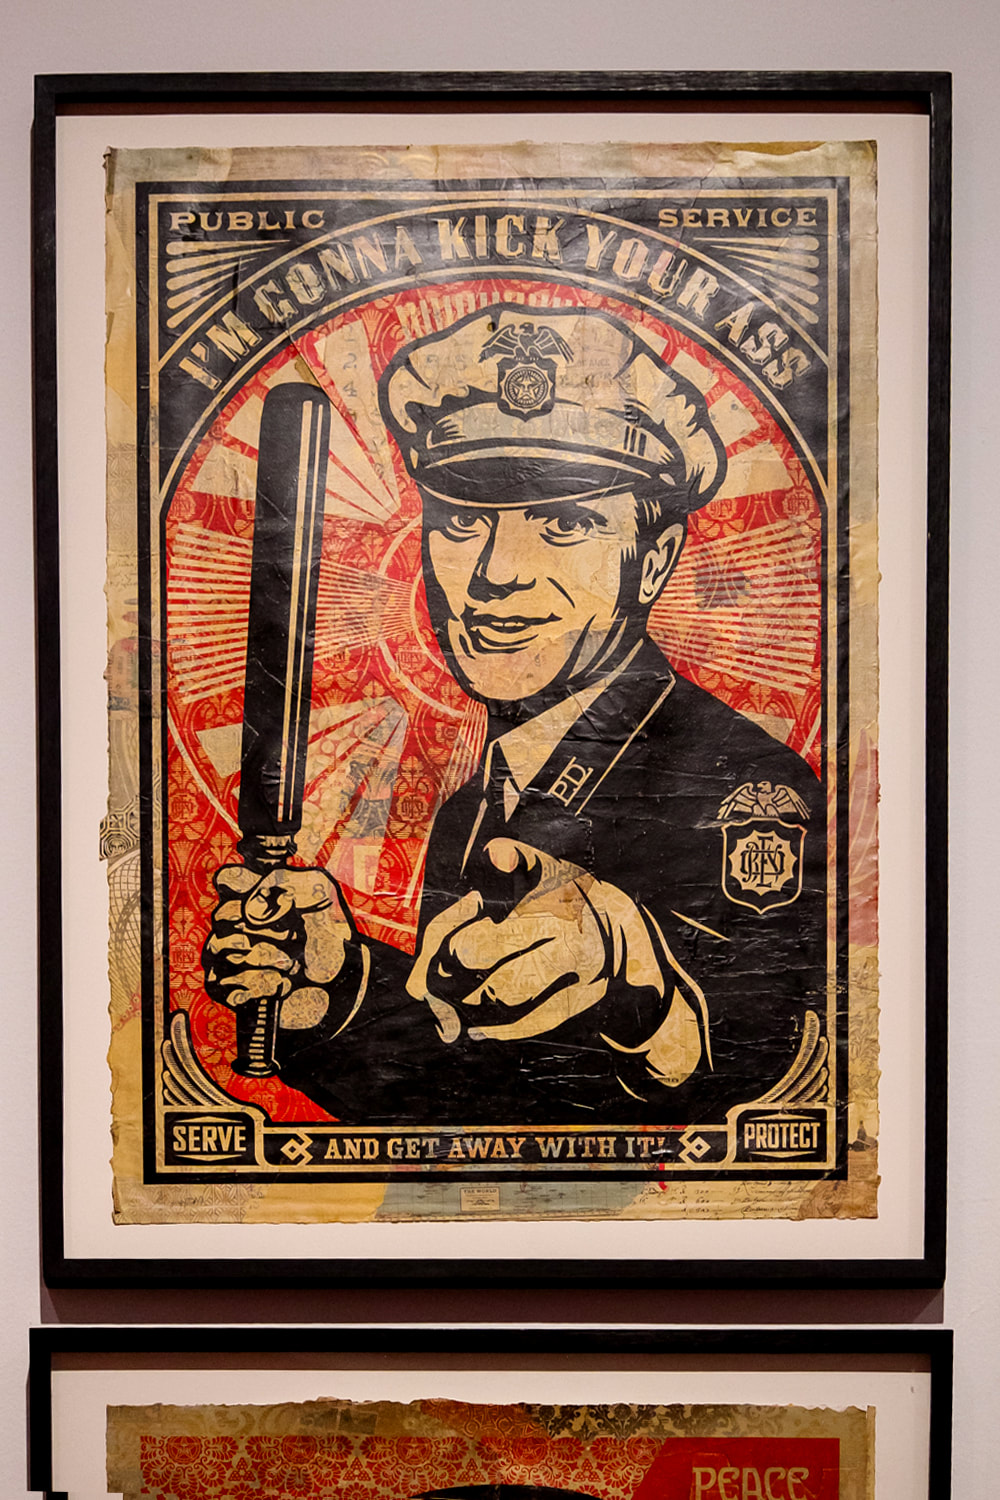 Singapore: Art From The Streets Exhibition at the ArtScience Museum - I'm Gonna Kick Your Ass - Shepard Fairey - 2006.